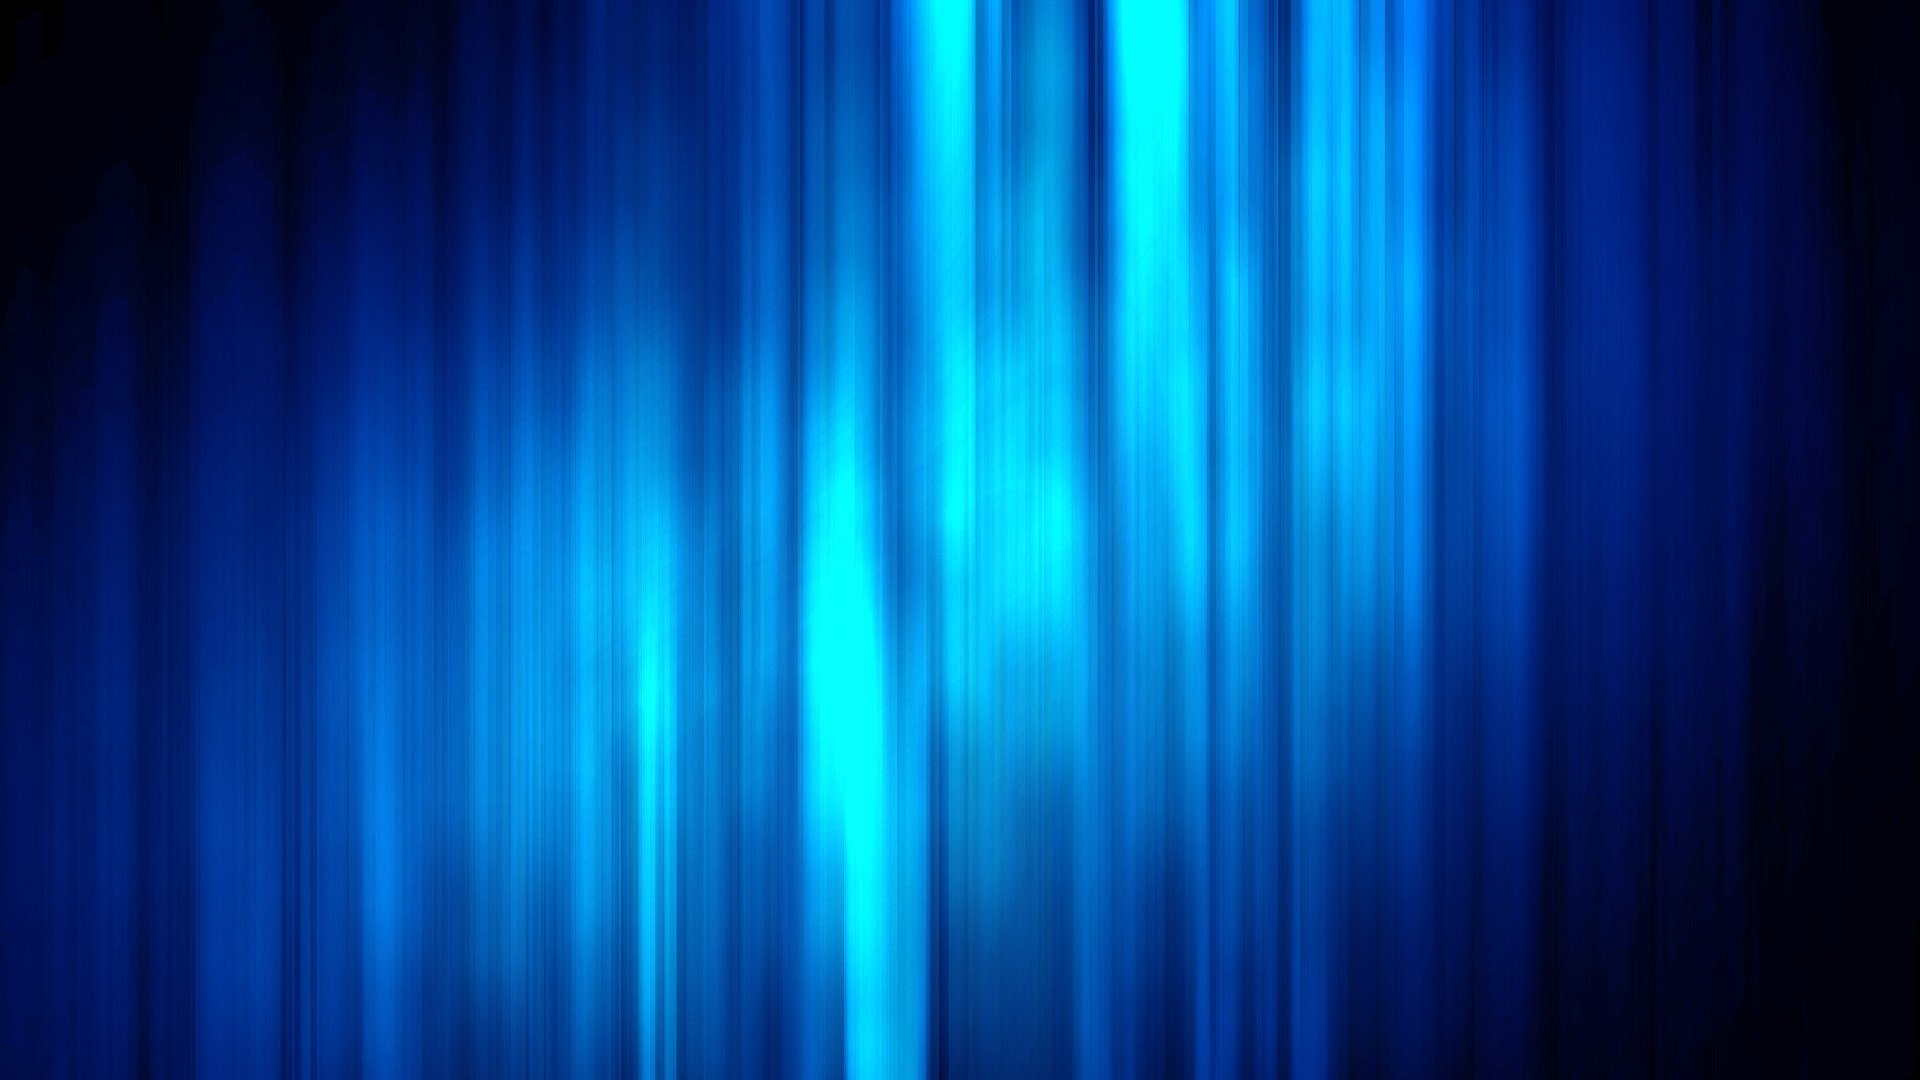 Free Blue high quality wallpaper ID:293829 for hd 1080p computer